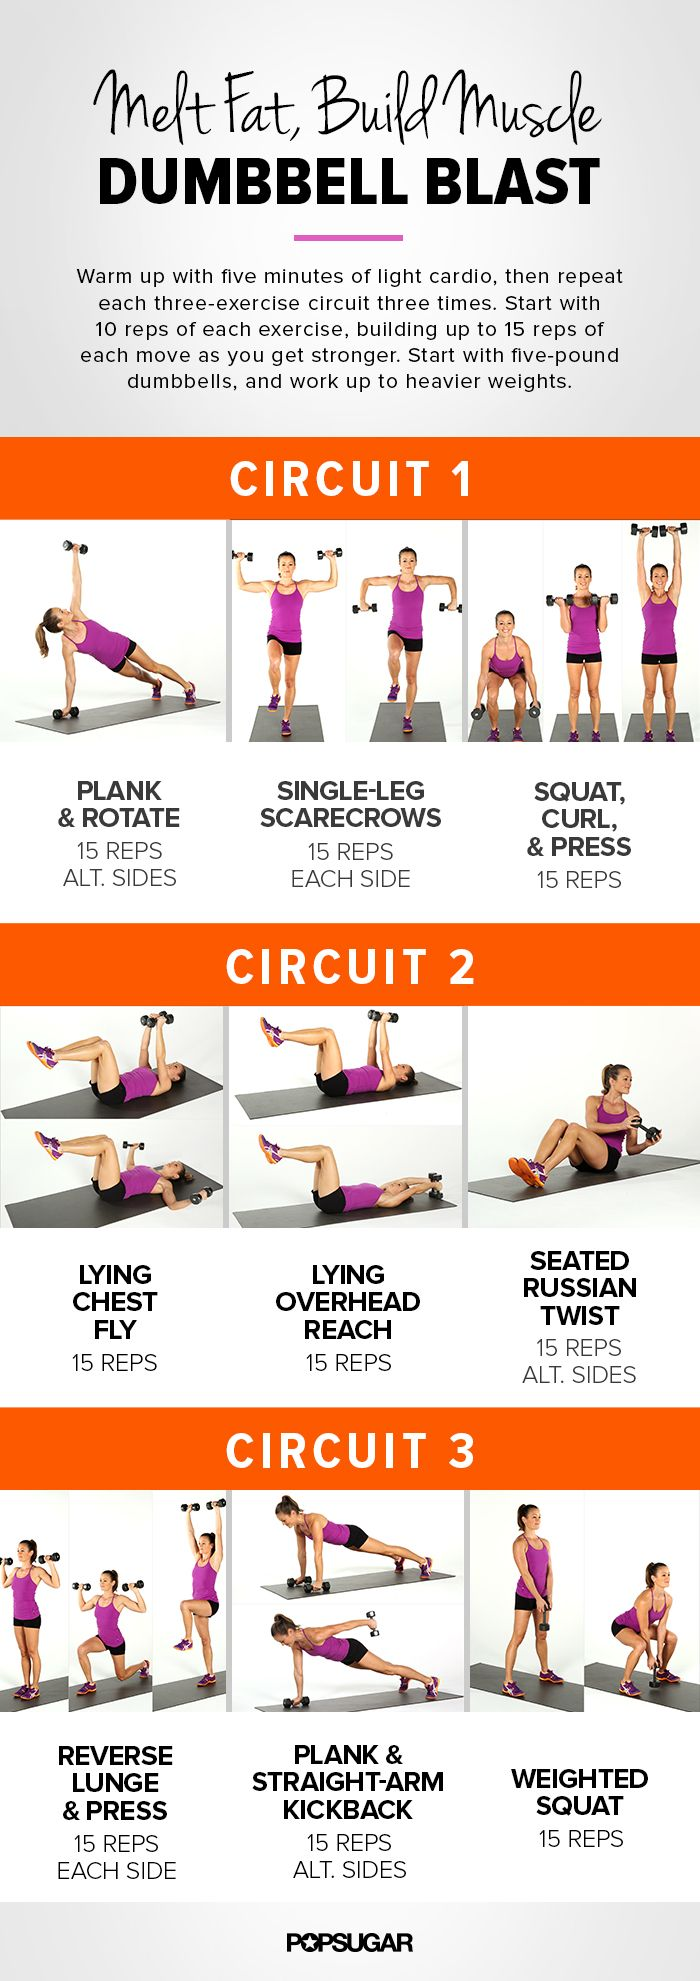 Melt fat and build muscle with our dumbbell blast circuit workout! #GetFit2014